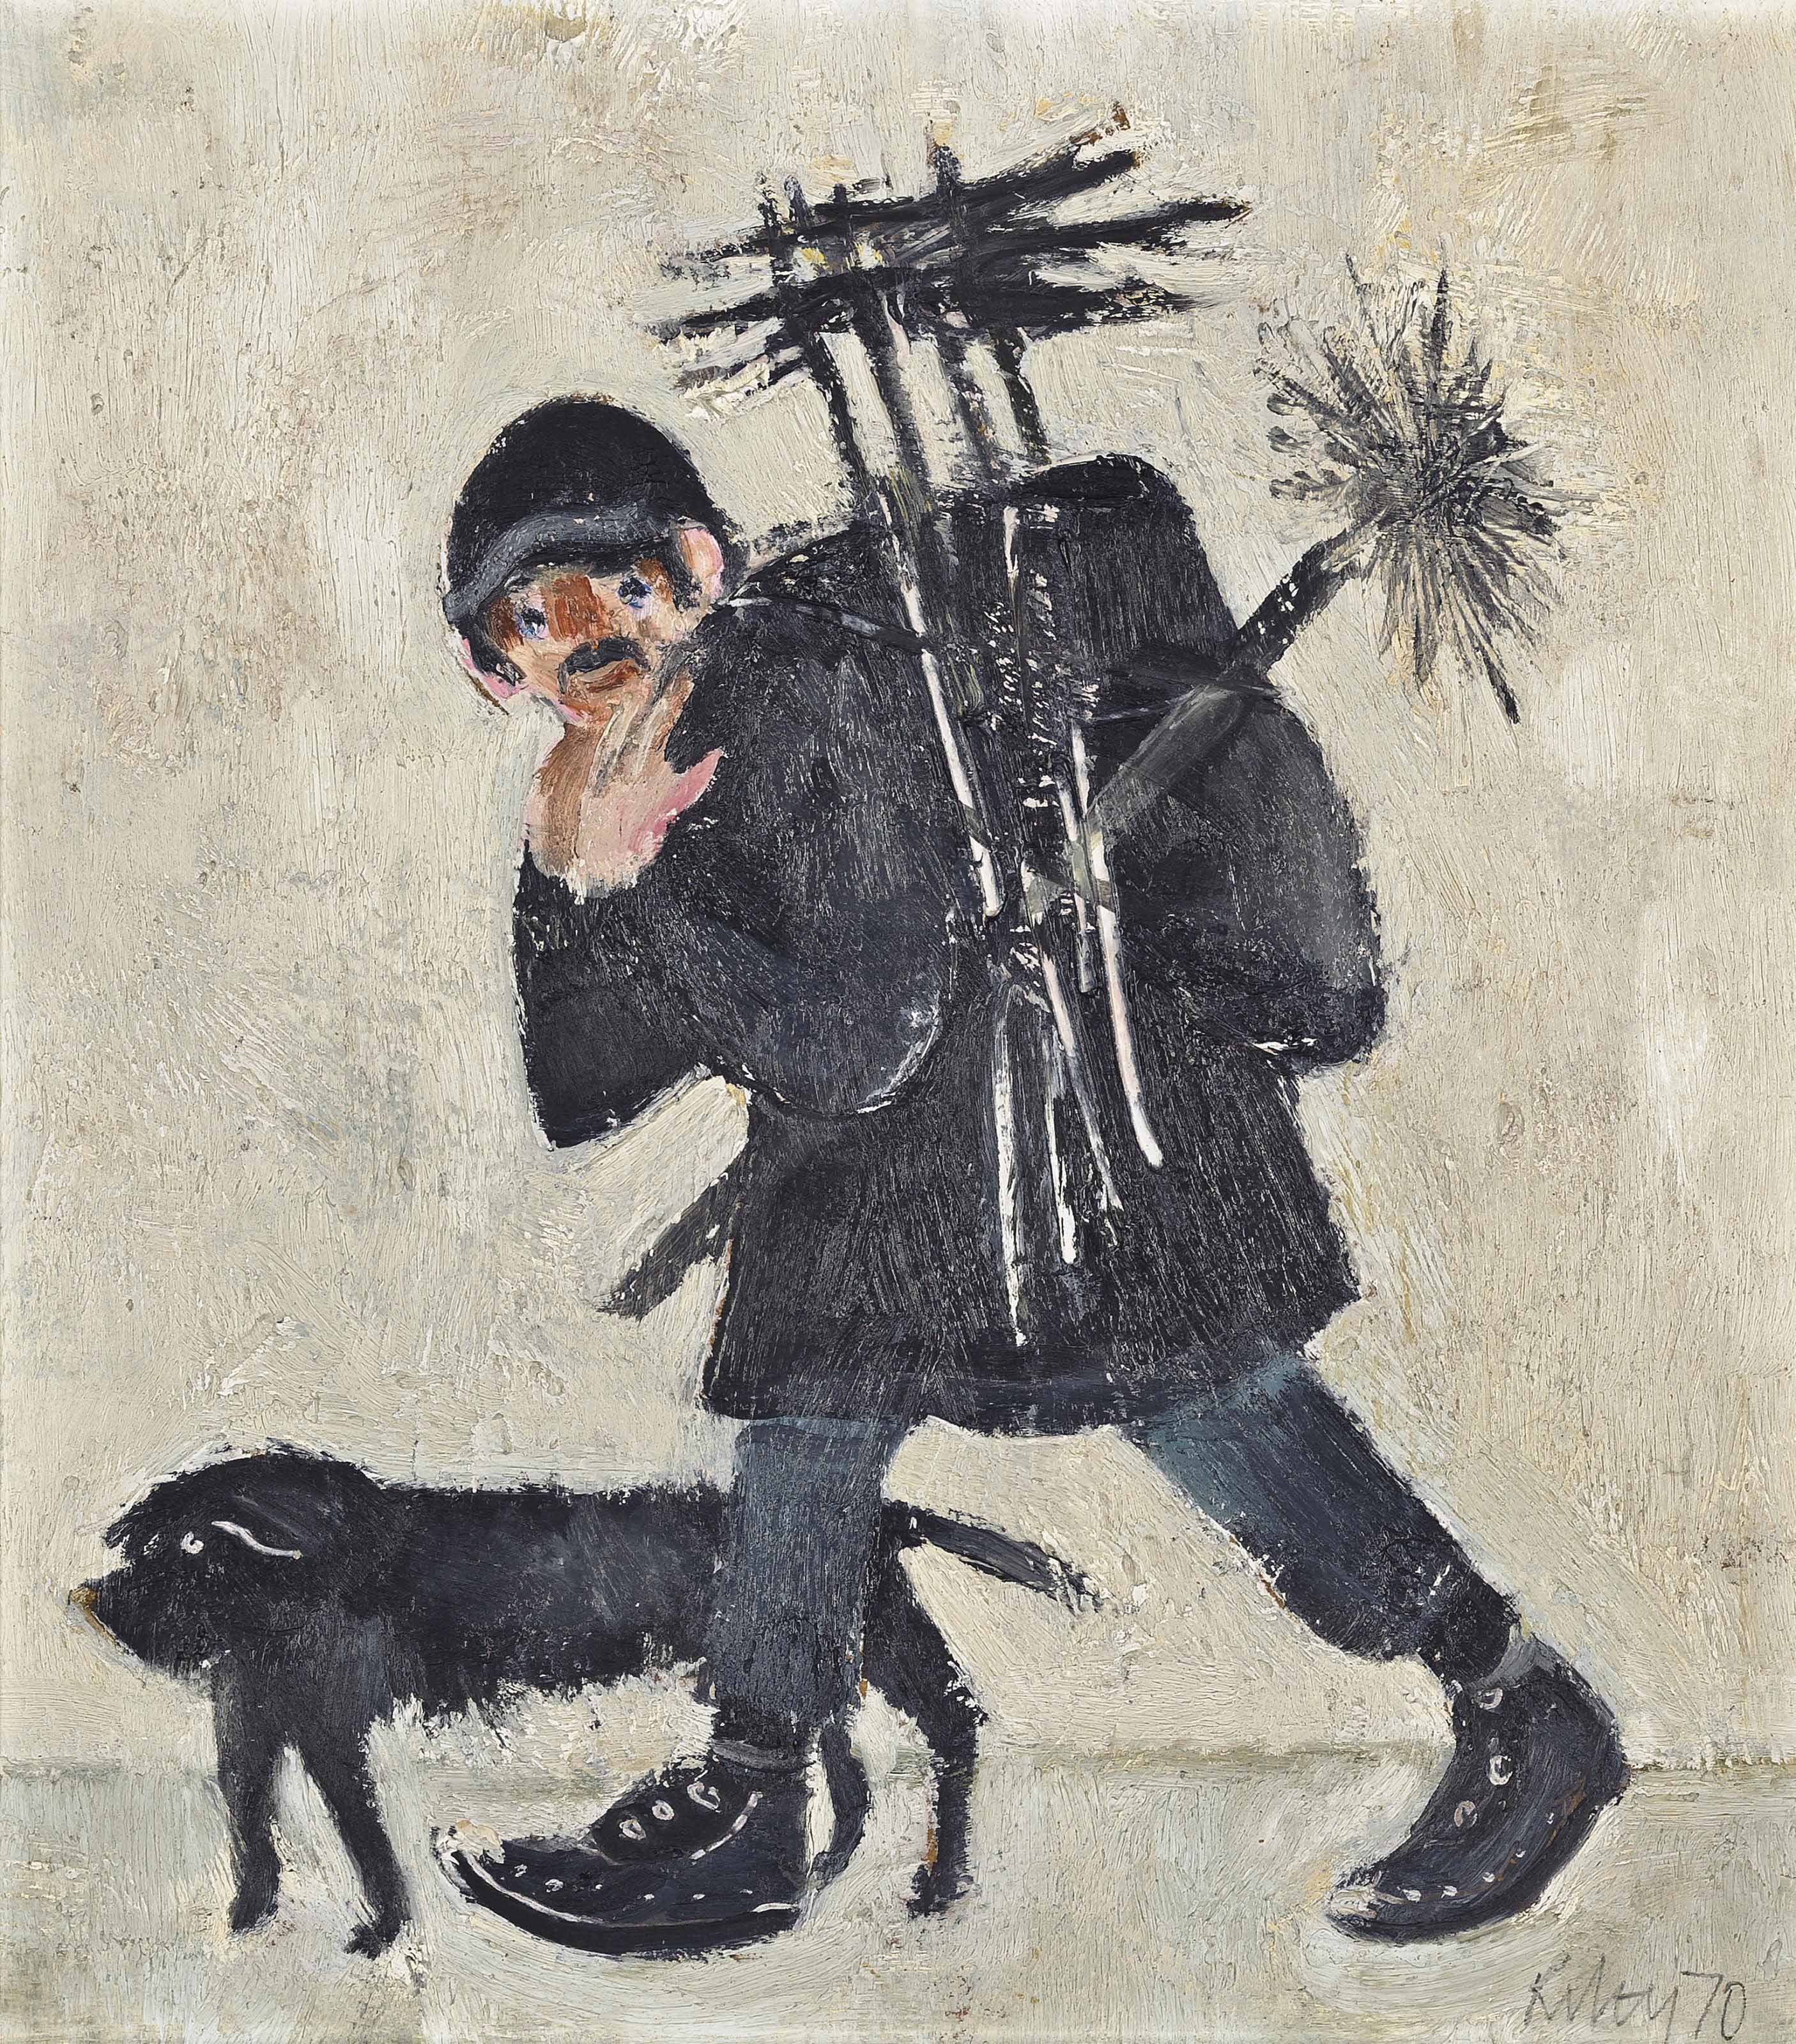 Bill Flood, the chimney sweep